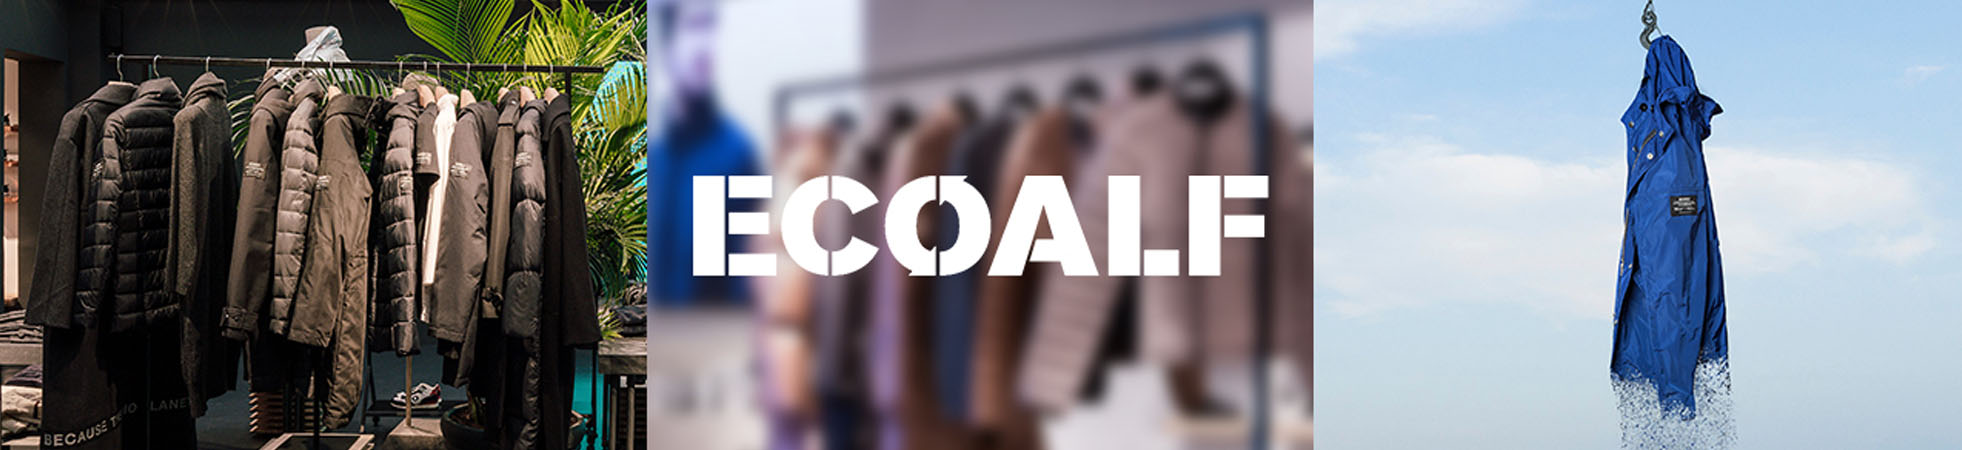 Ecoalf Sustainable Clothing